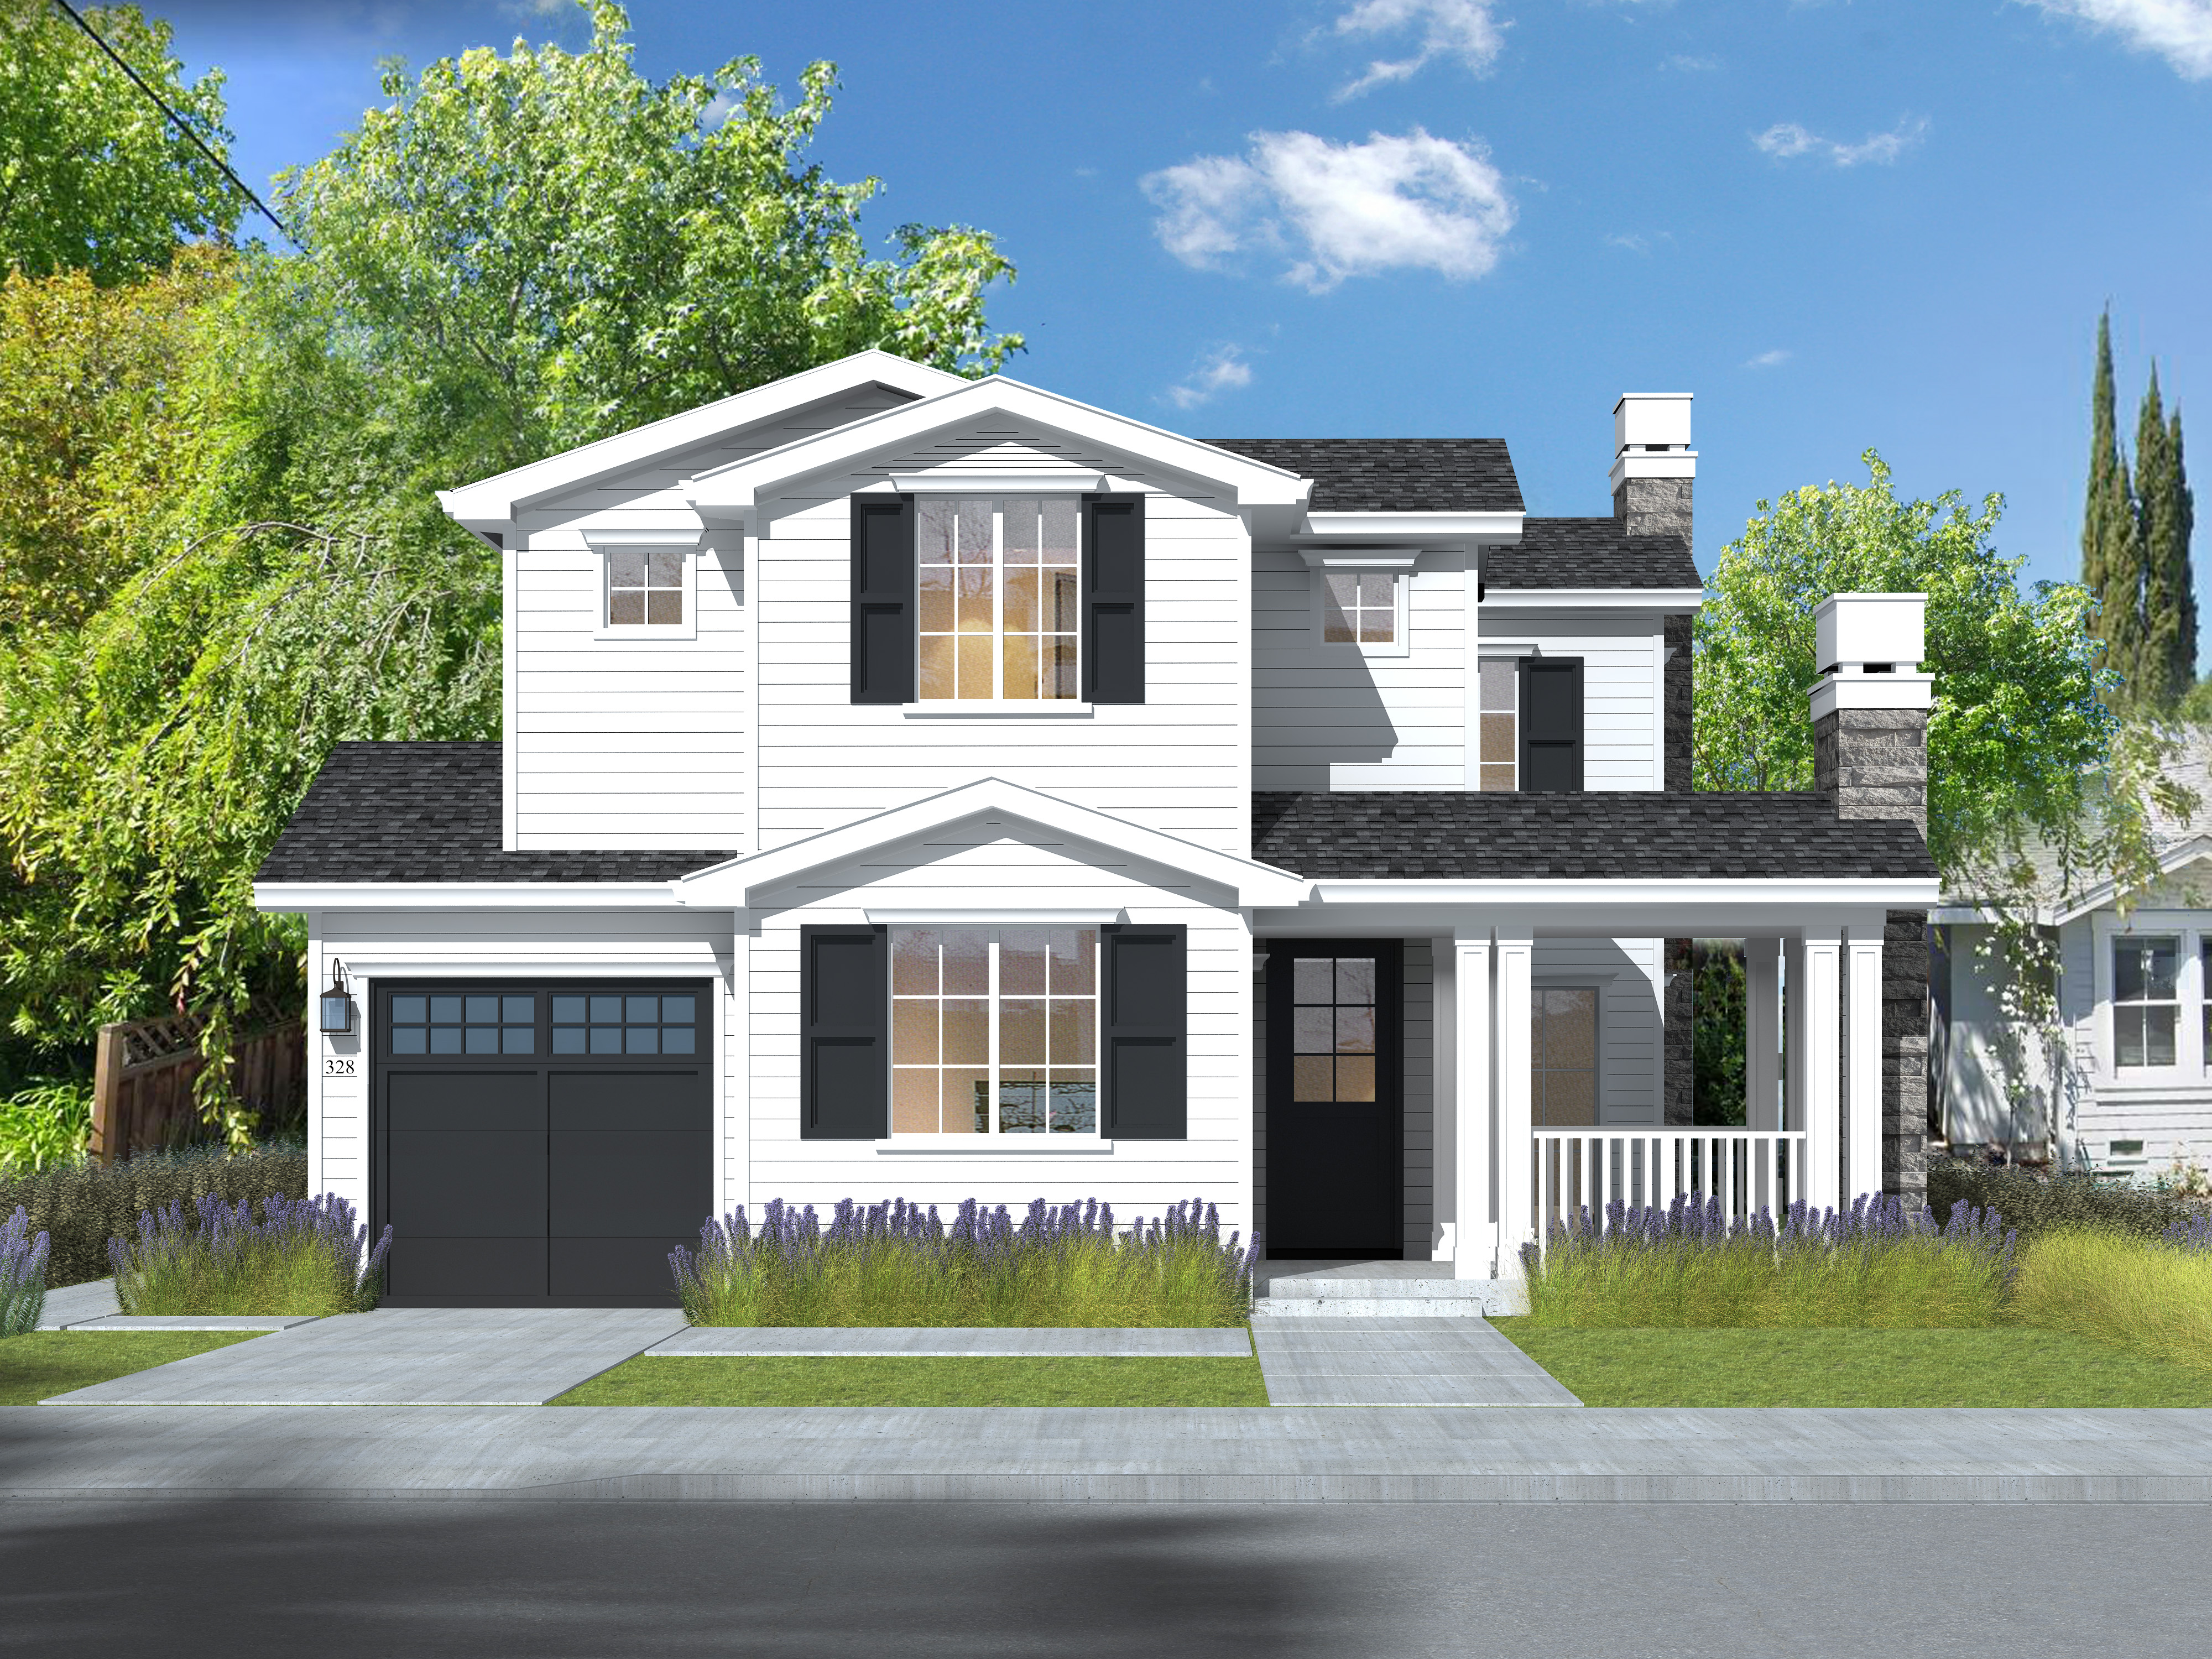 328 HILL Rendering Front 05.21.20